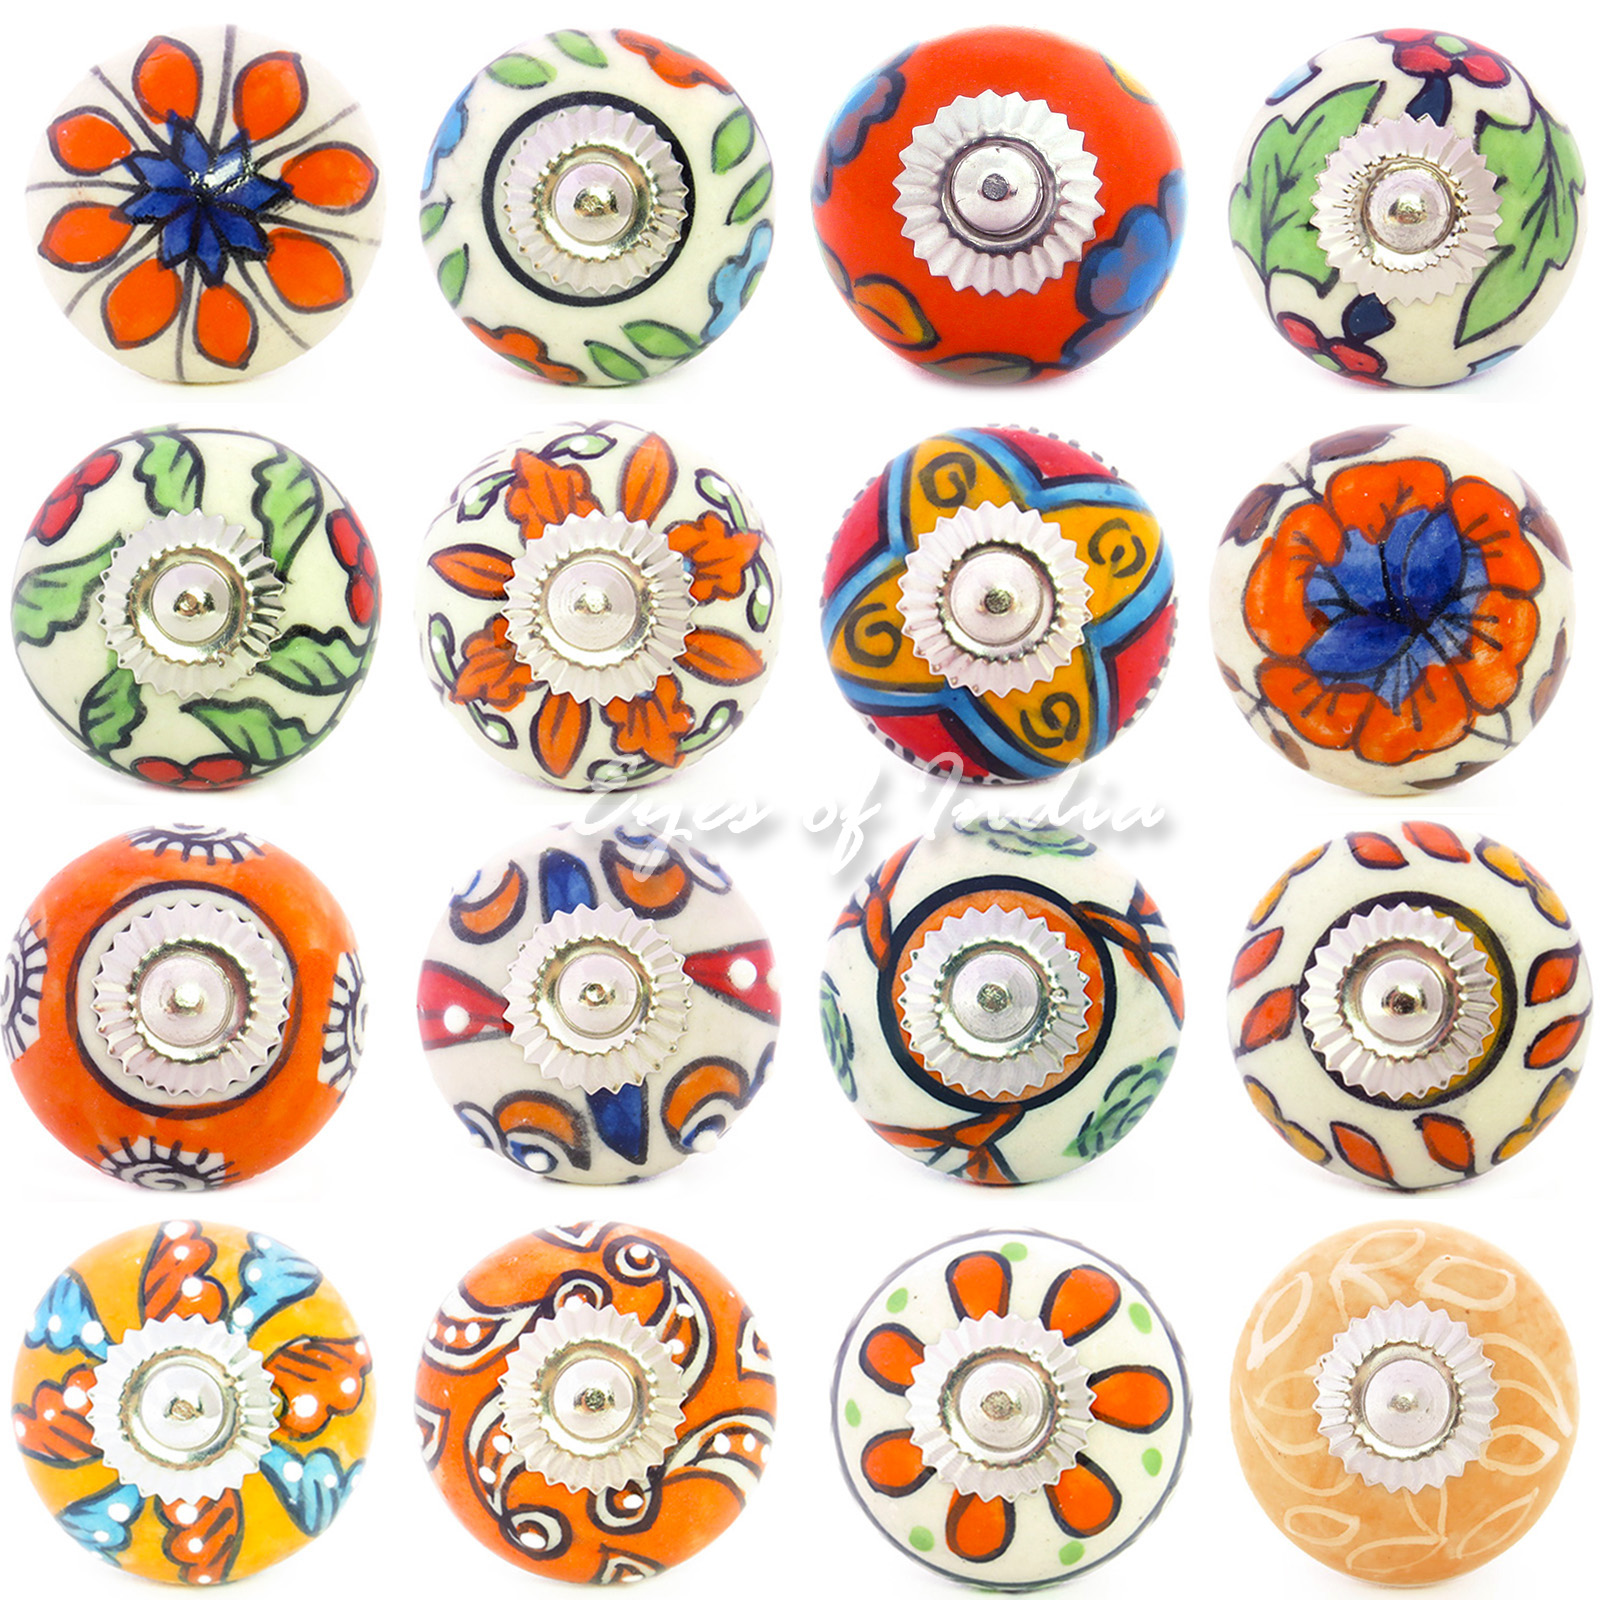 Genial Orange Ceramic Cupboard Cabinet Door Dresser Decorative Shabby Chic Knobs